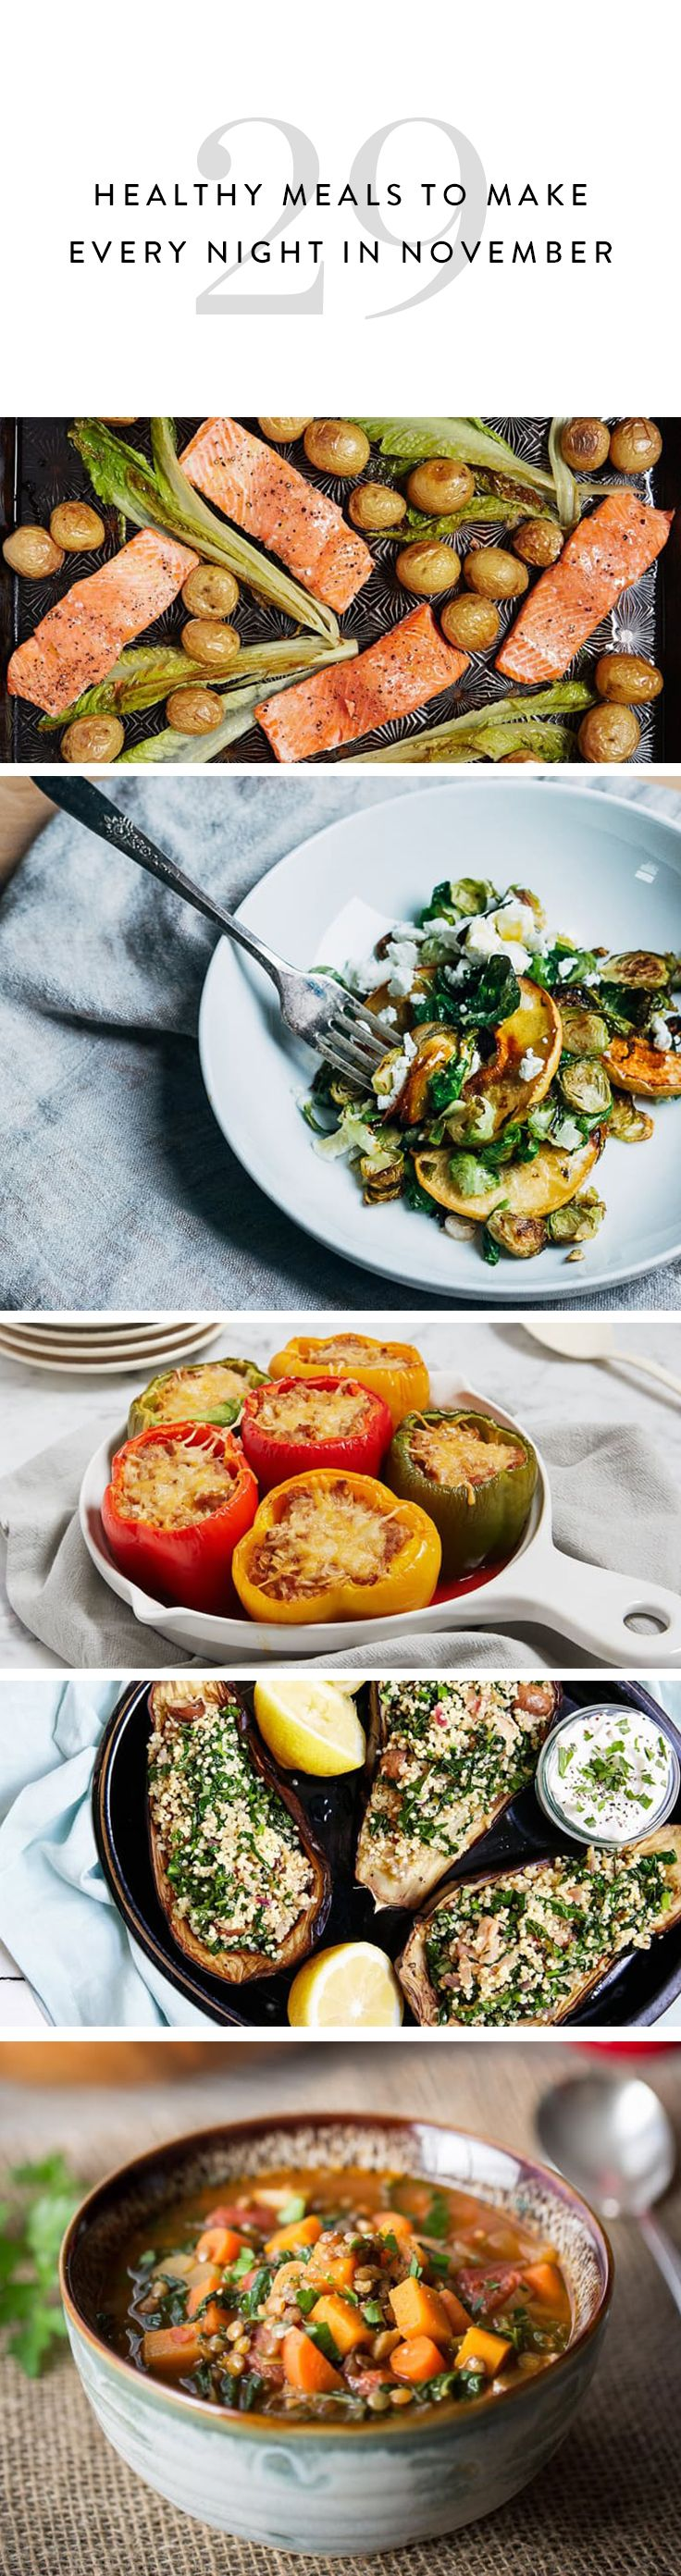 29 Healthy Meals to Make Every Night in November (Except Thanksgiving)